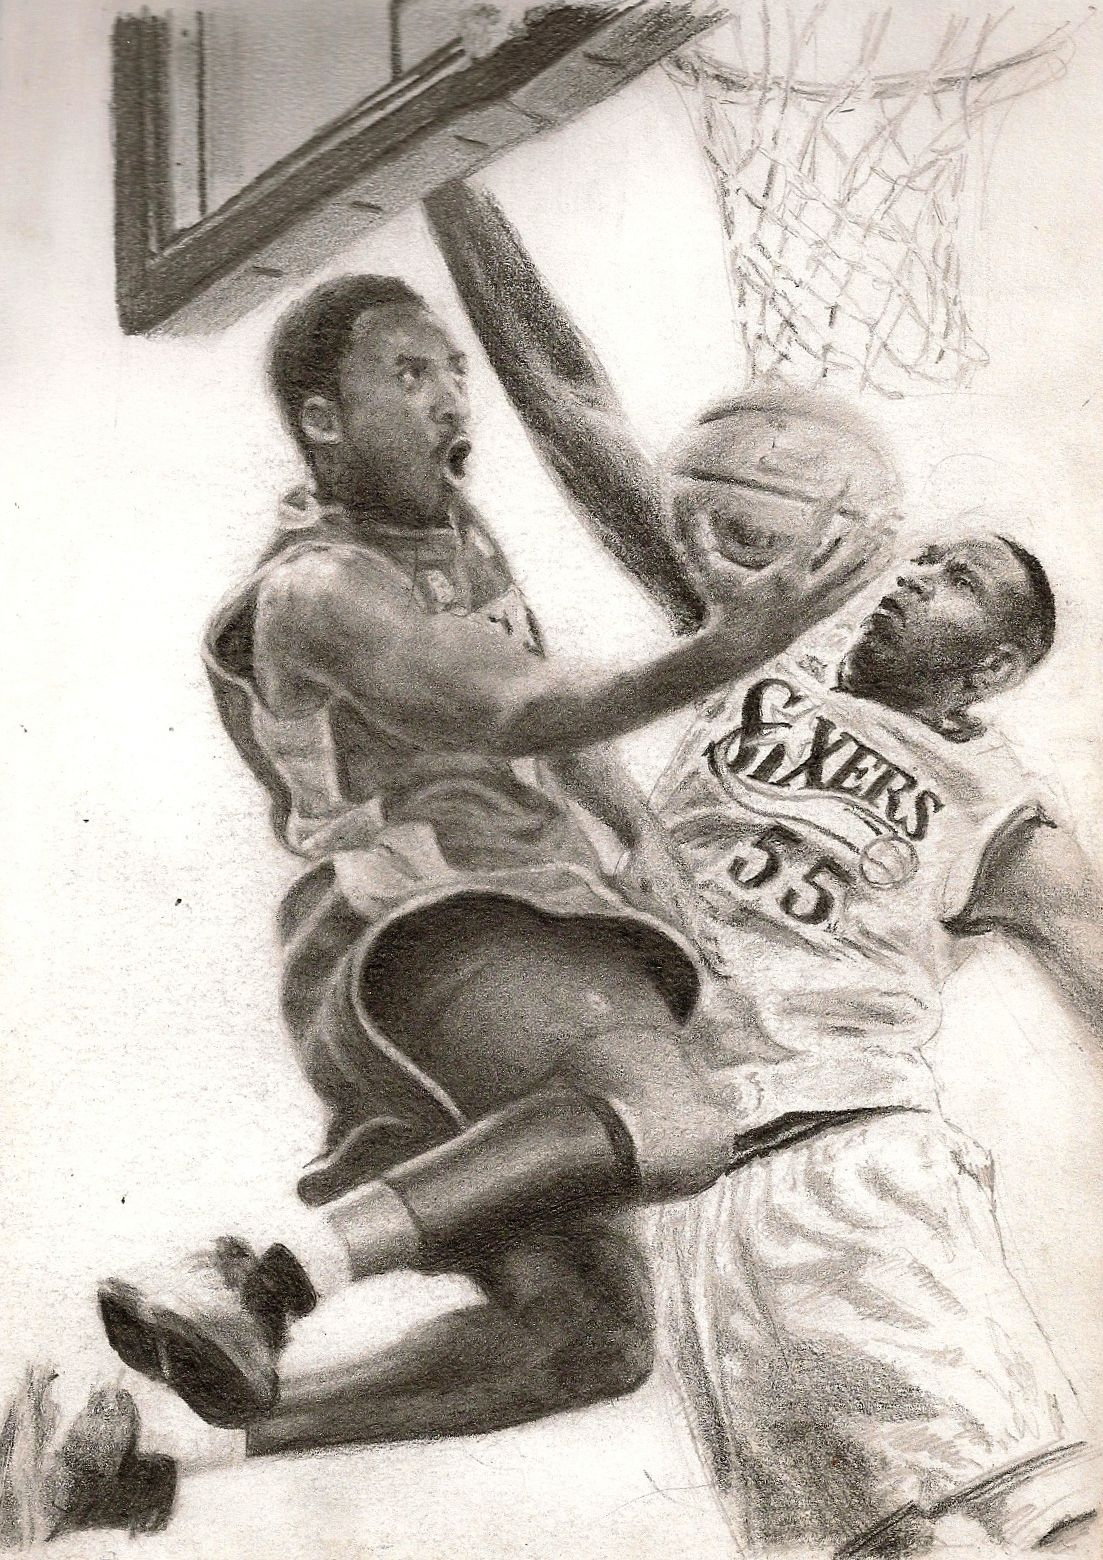 Kobe Bryant over Dikembe Mutombo - pencil on paper